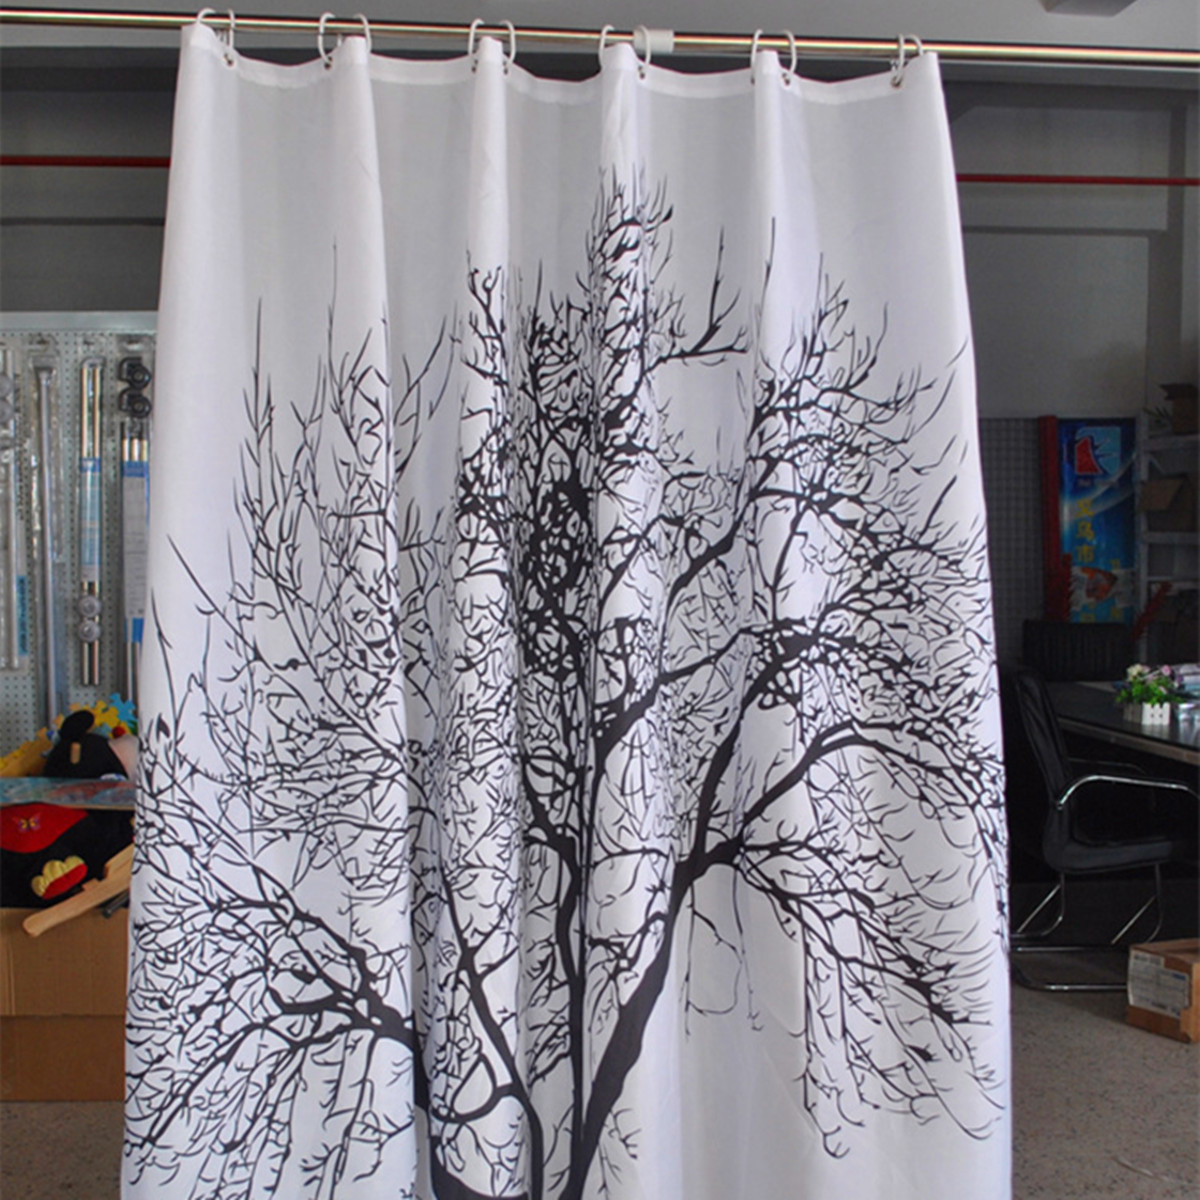 Tree Waterproof Fabric Bathroom Shower Curtain With 12